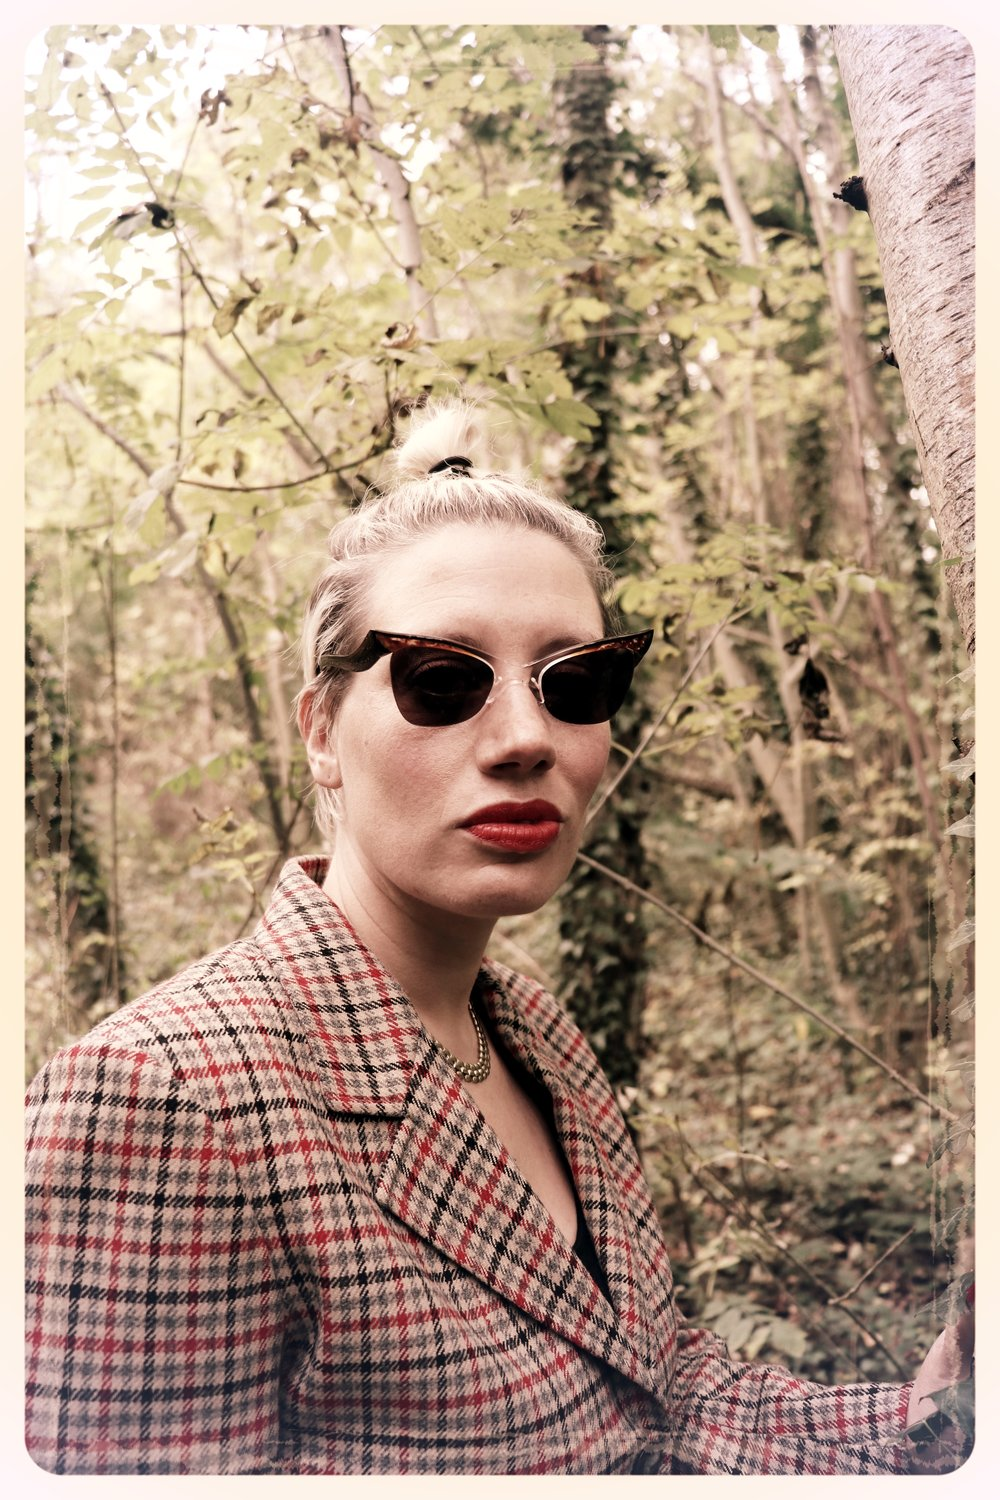 Peep Eyewear, Vintage Sunglasses, 1950s, Carmel worn in the woods with tweed jacket